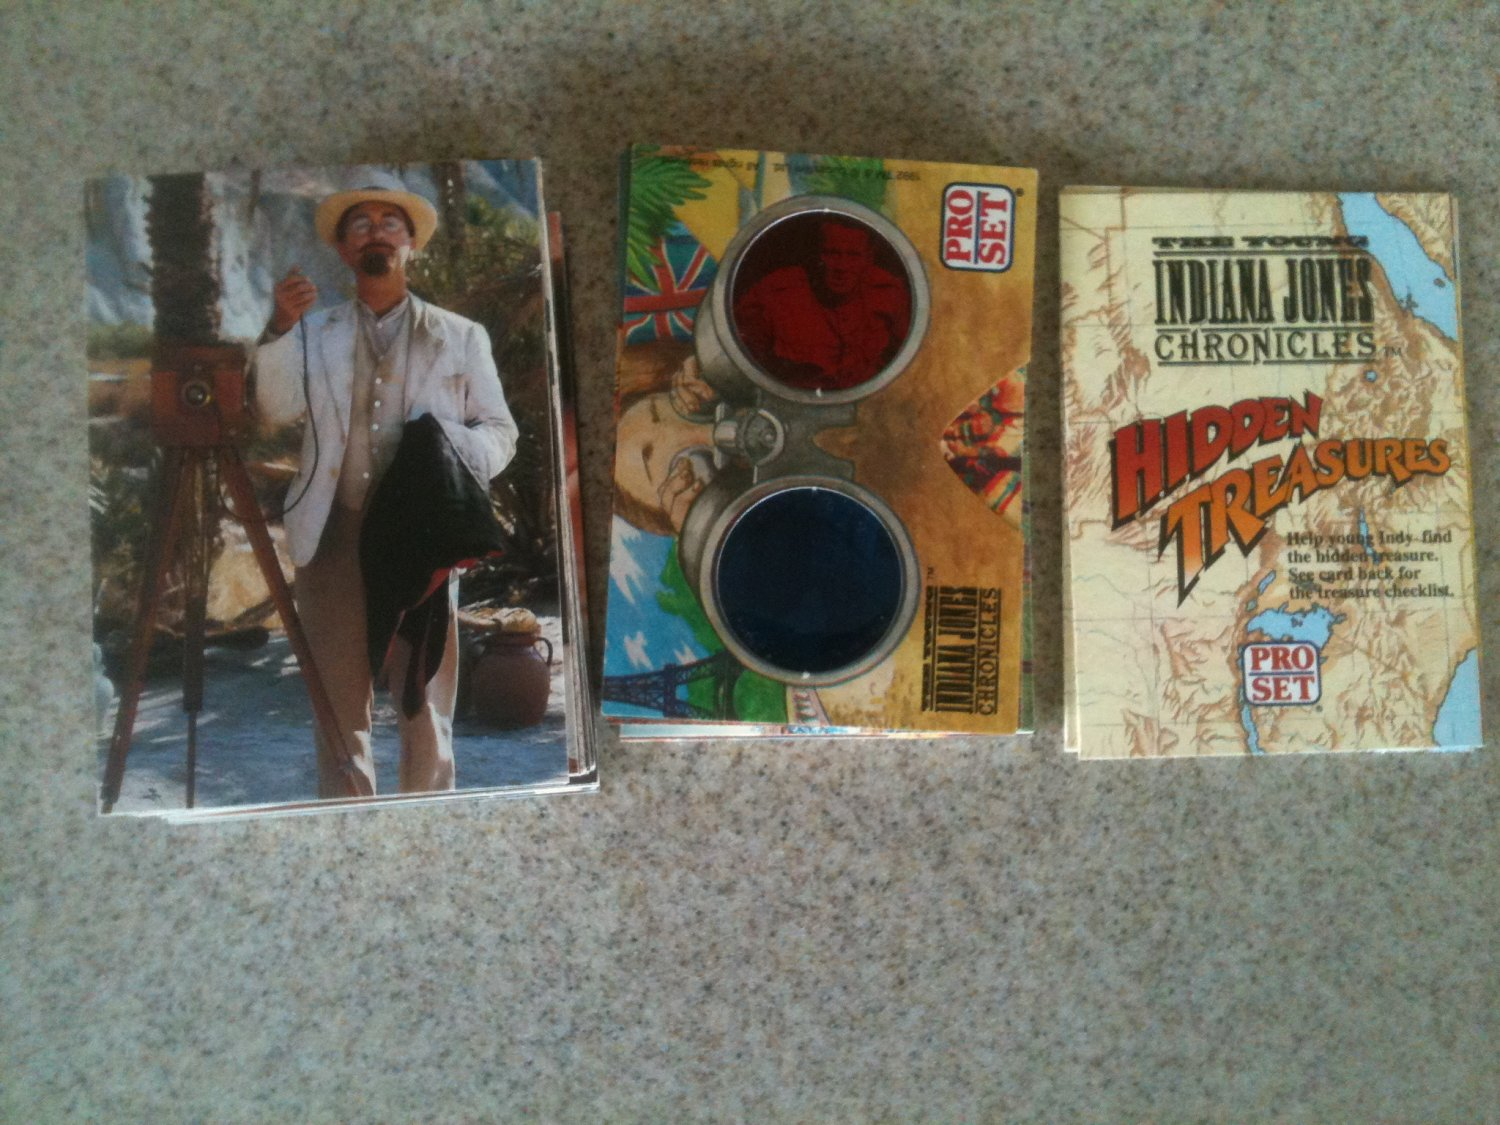 71 Pro Set Young Indiana Jones Chronicles Cards Lot (1992) 9/10 3D + Glasses